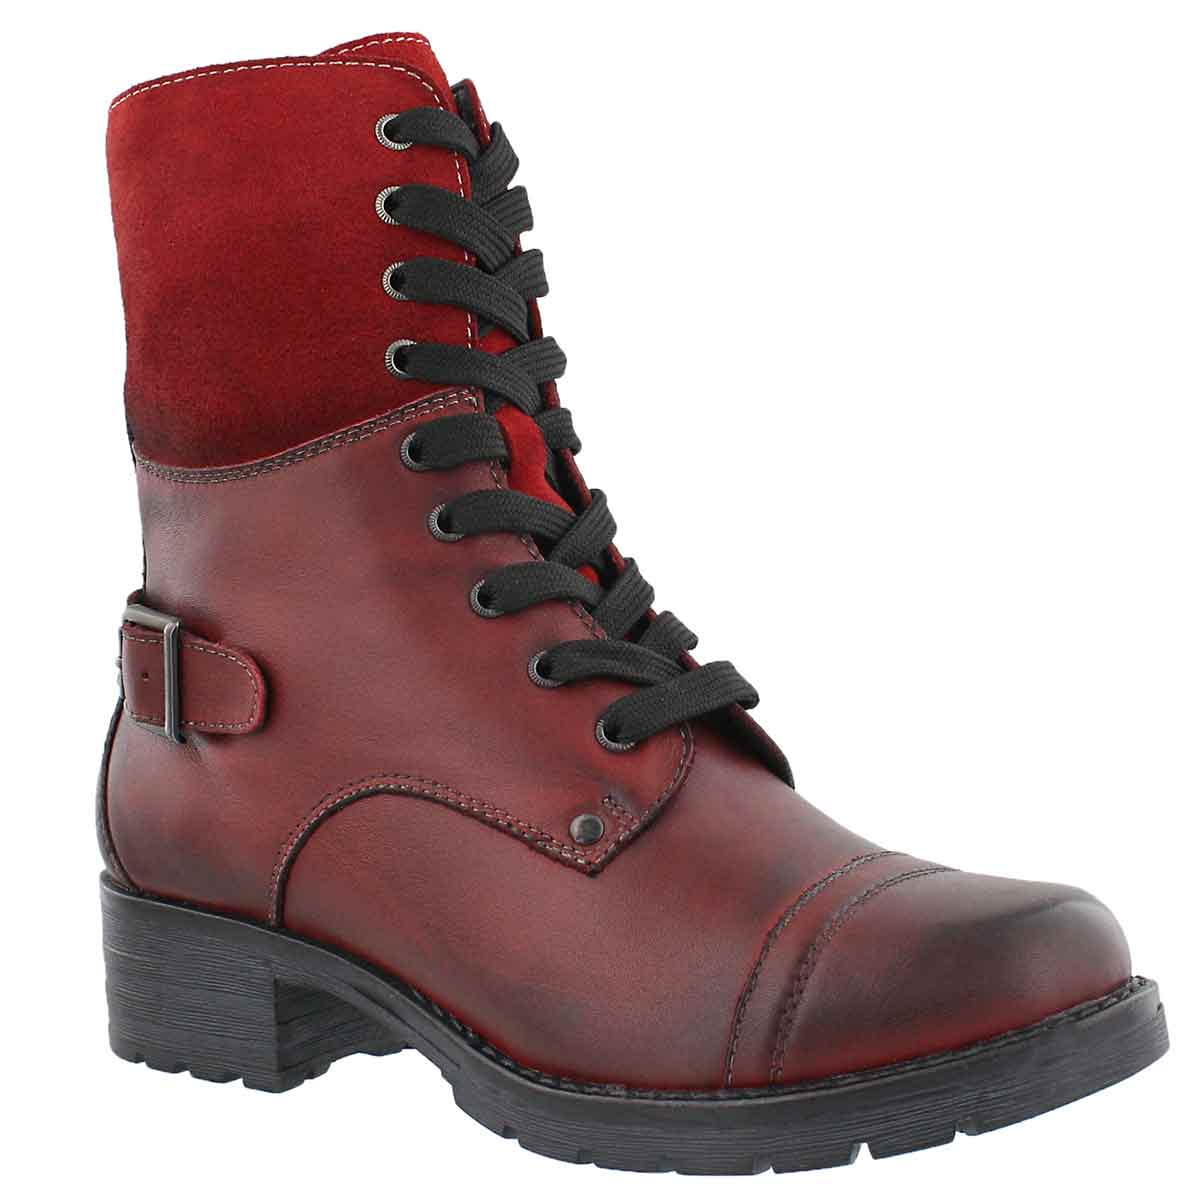 Women's DEEDEE 2 red combat boots